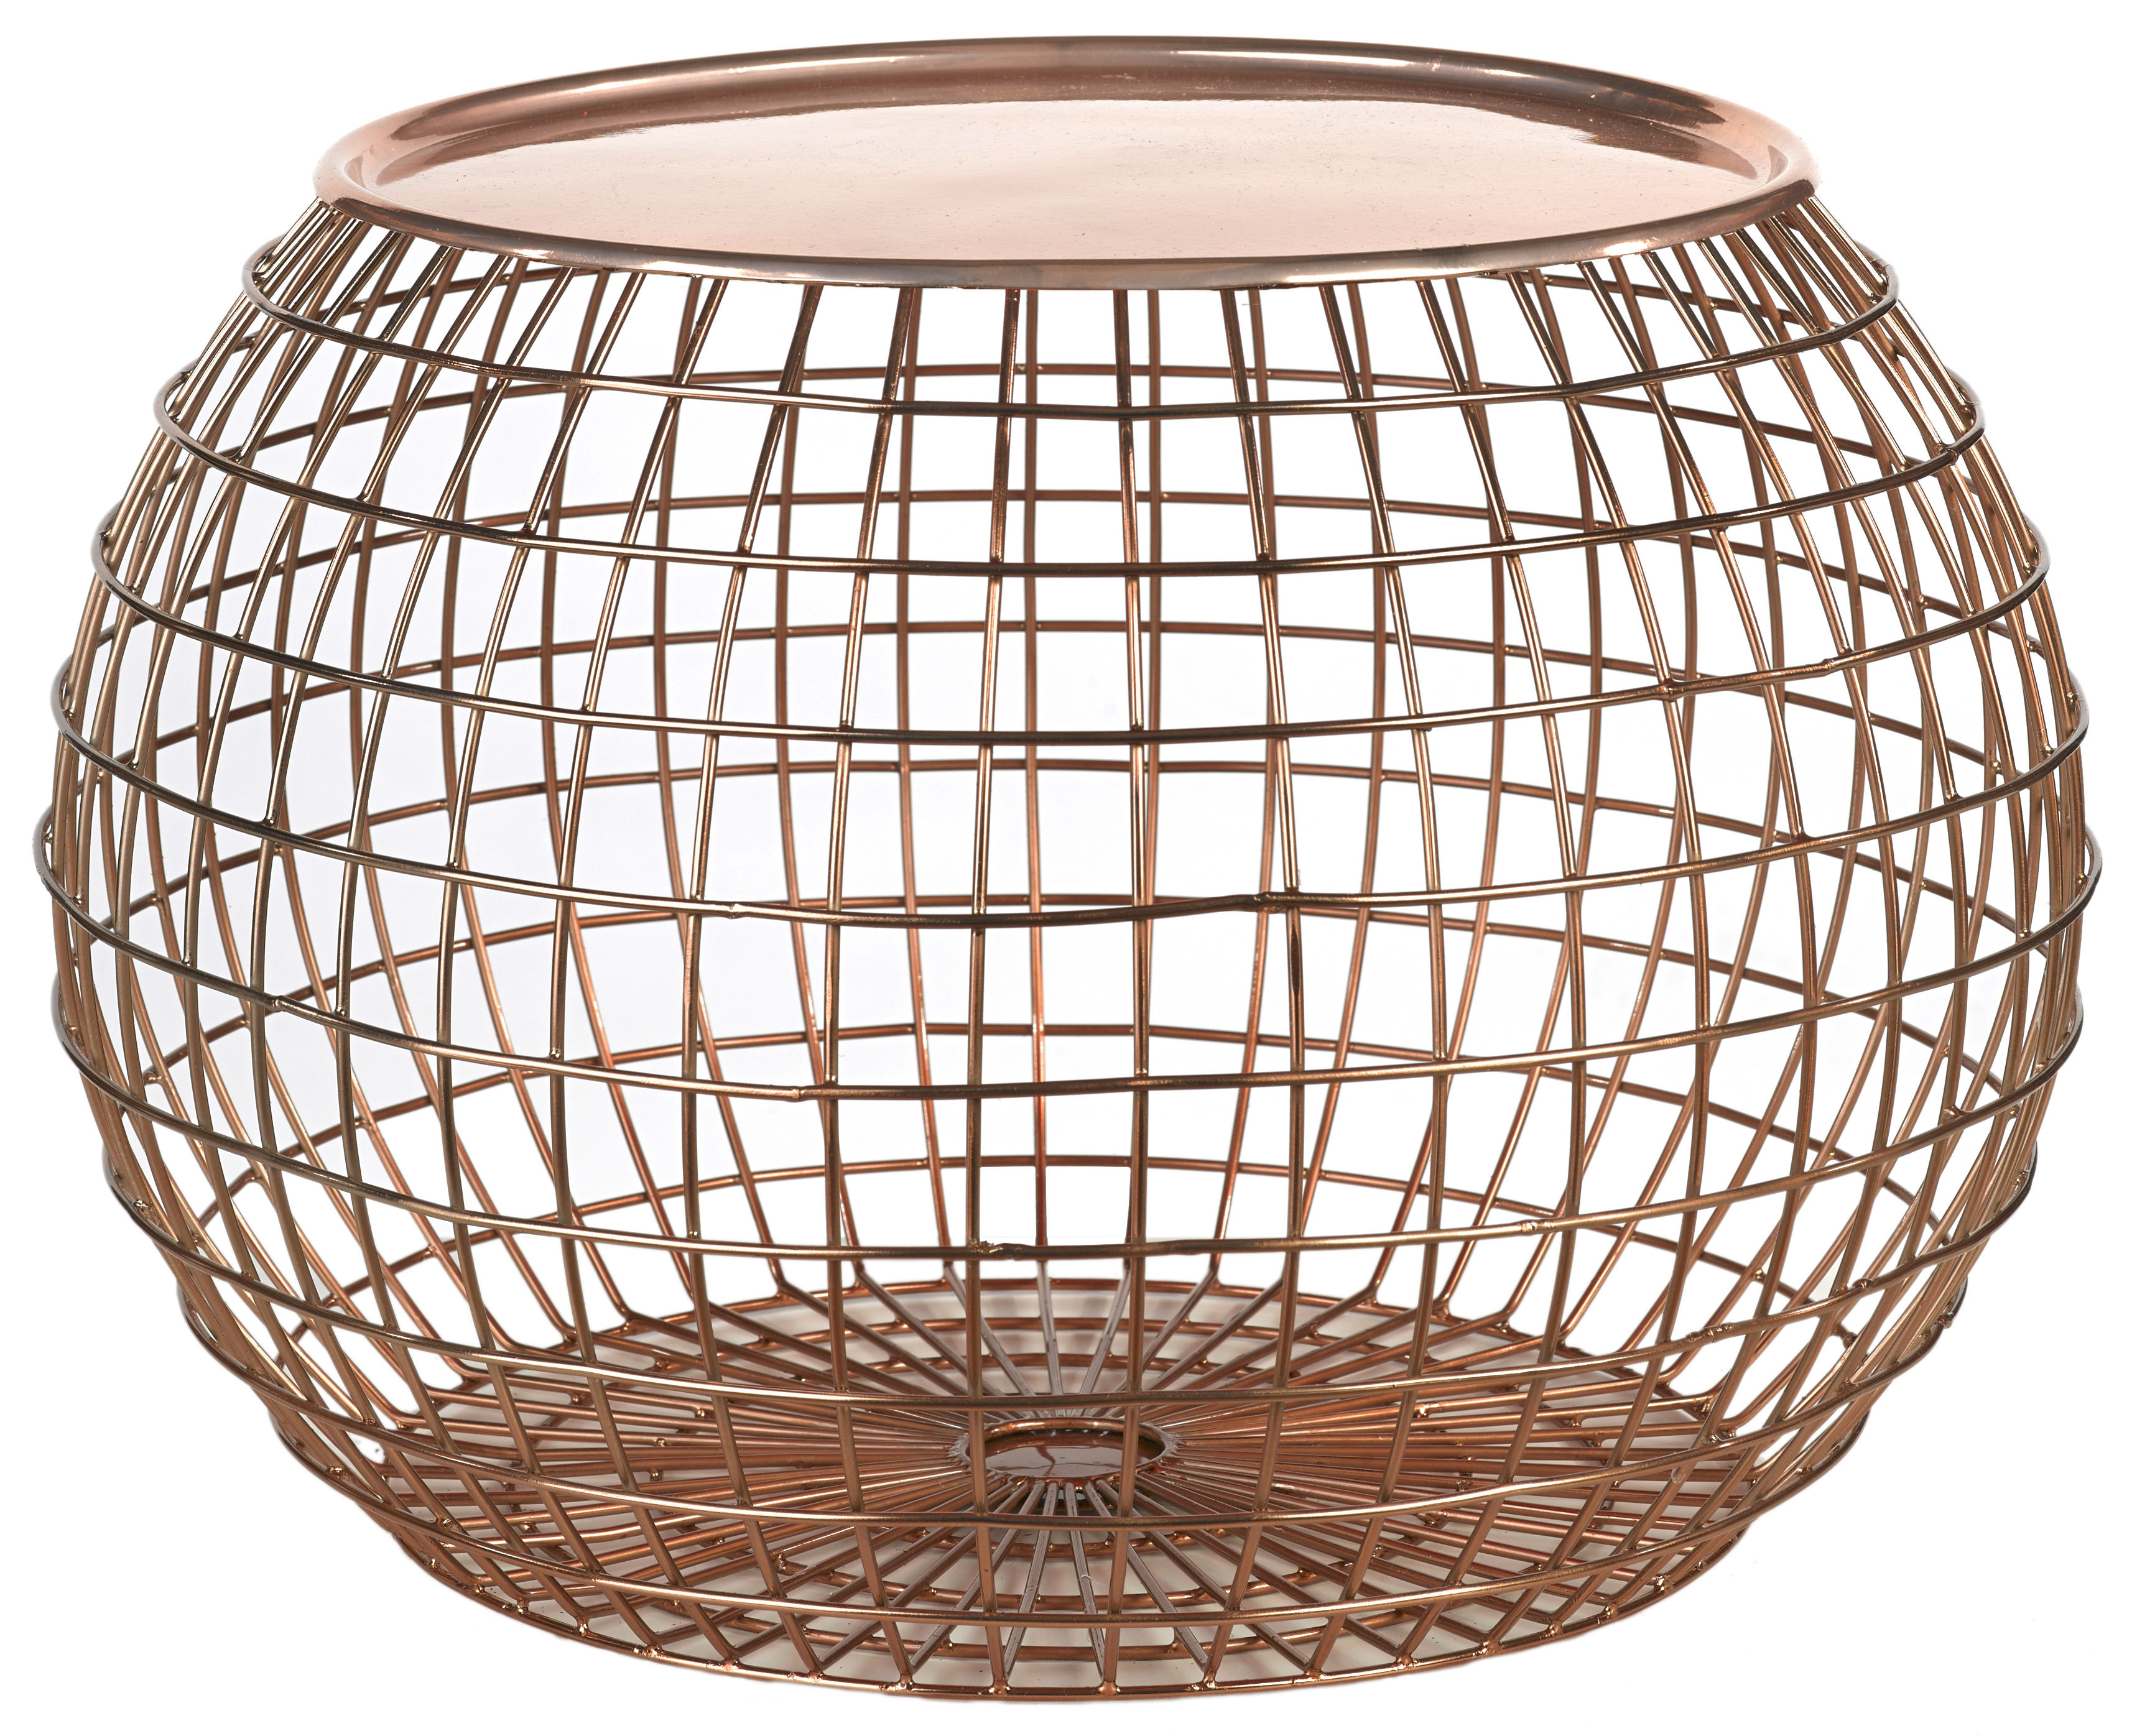 Ball wire coffee table removable tray 50 x h 32cm for Table y copper